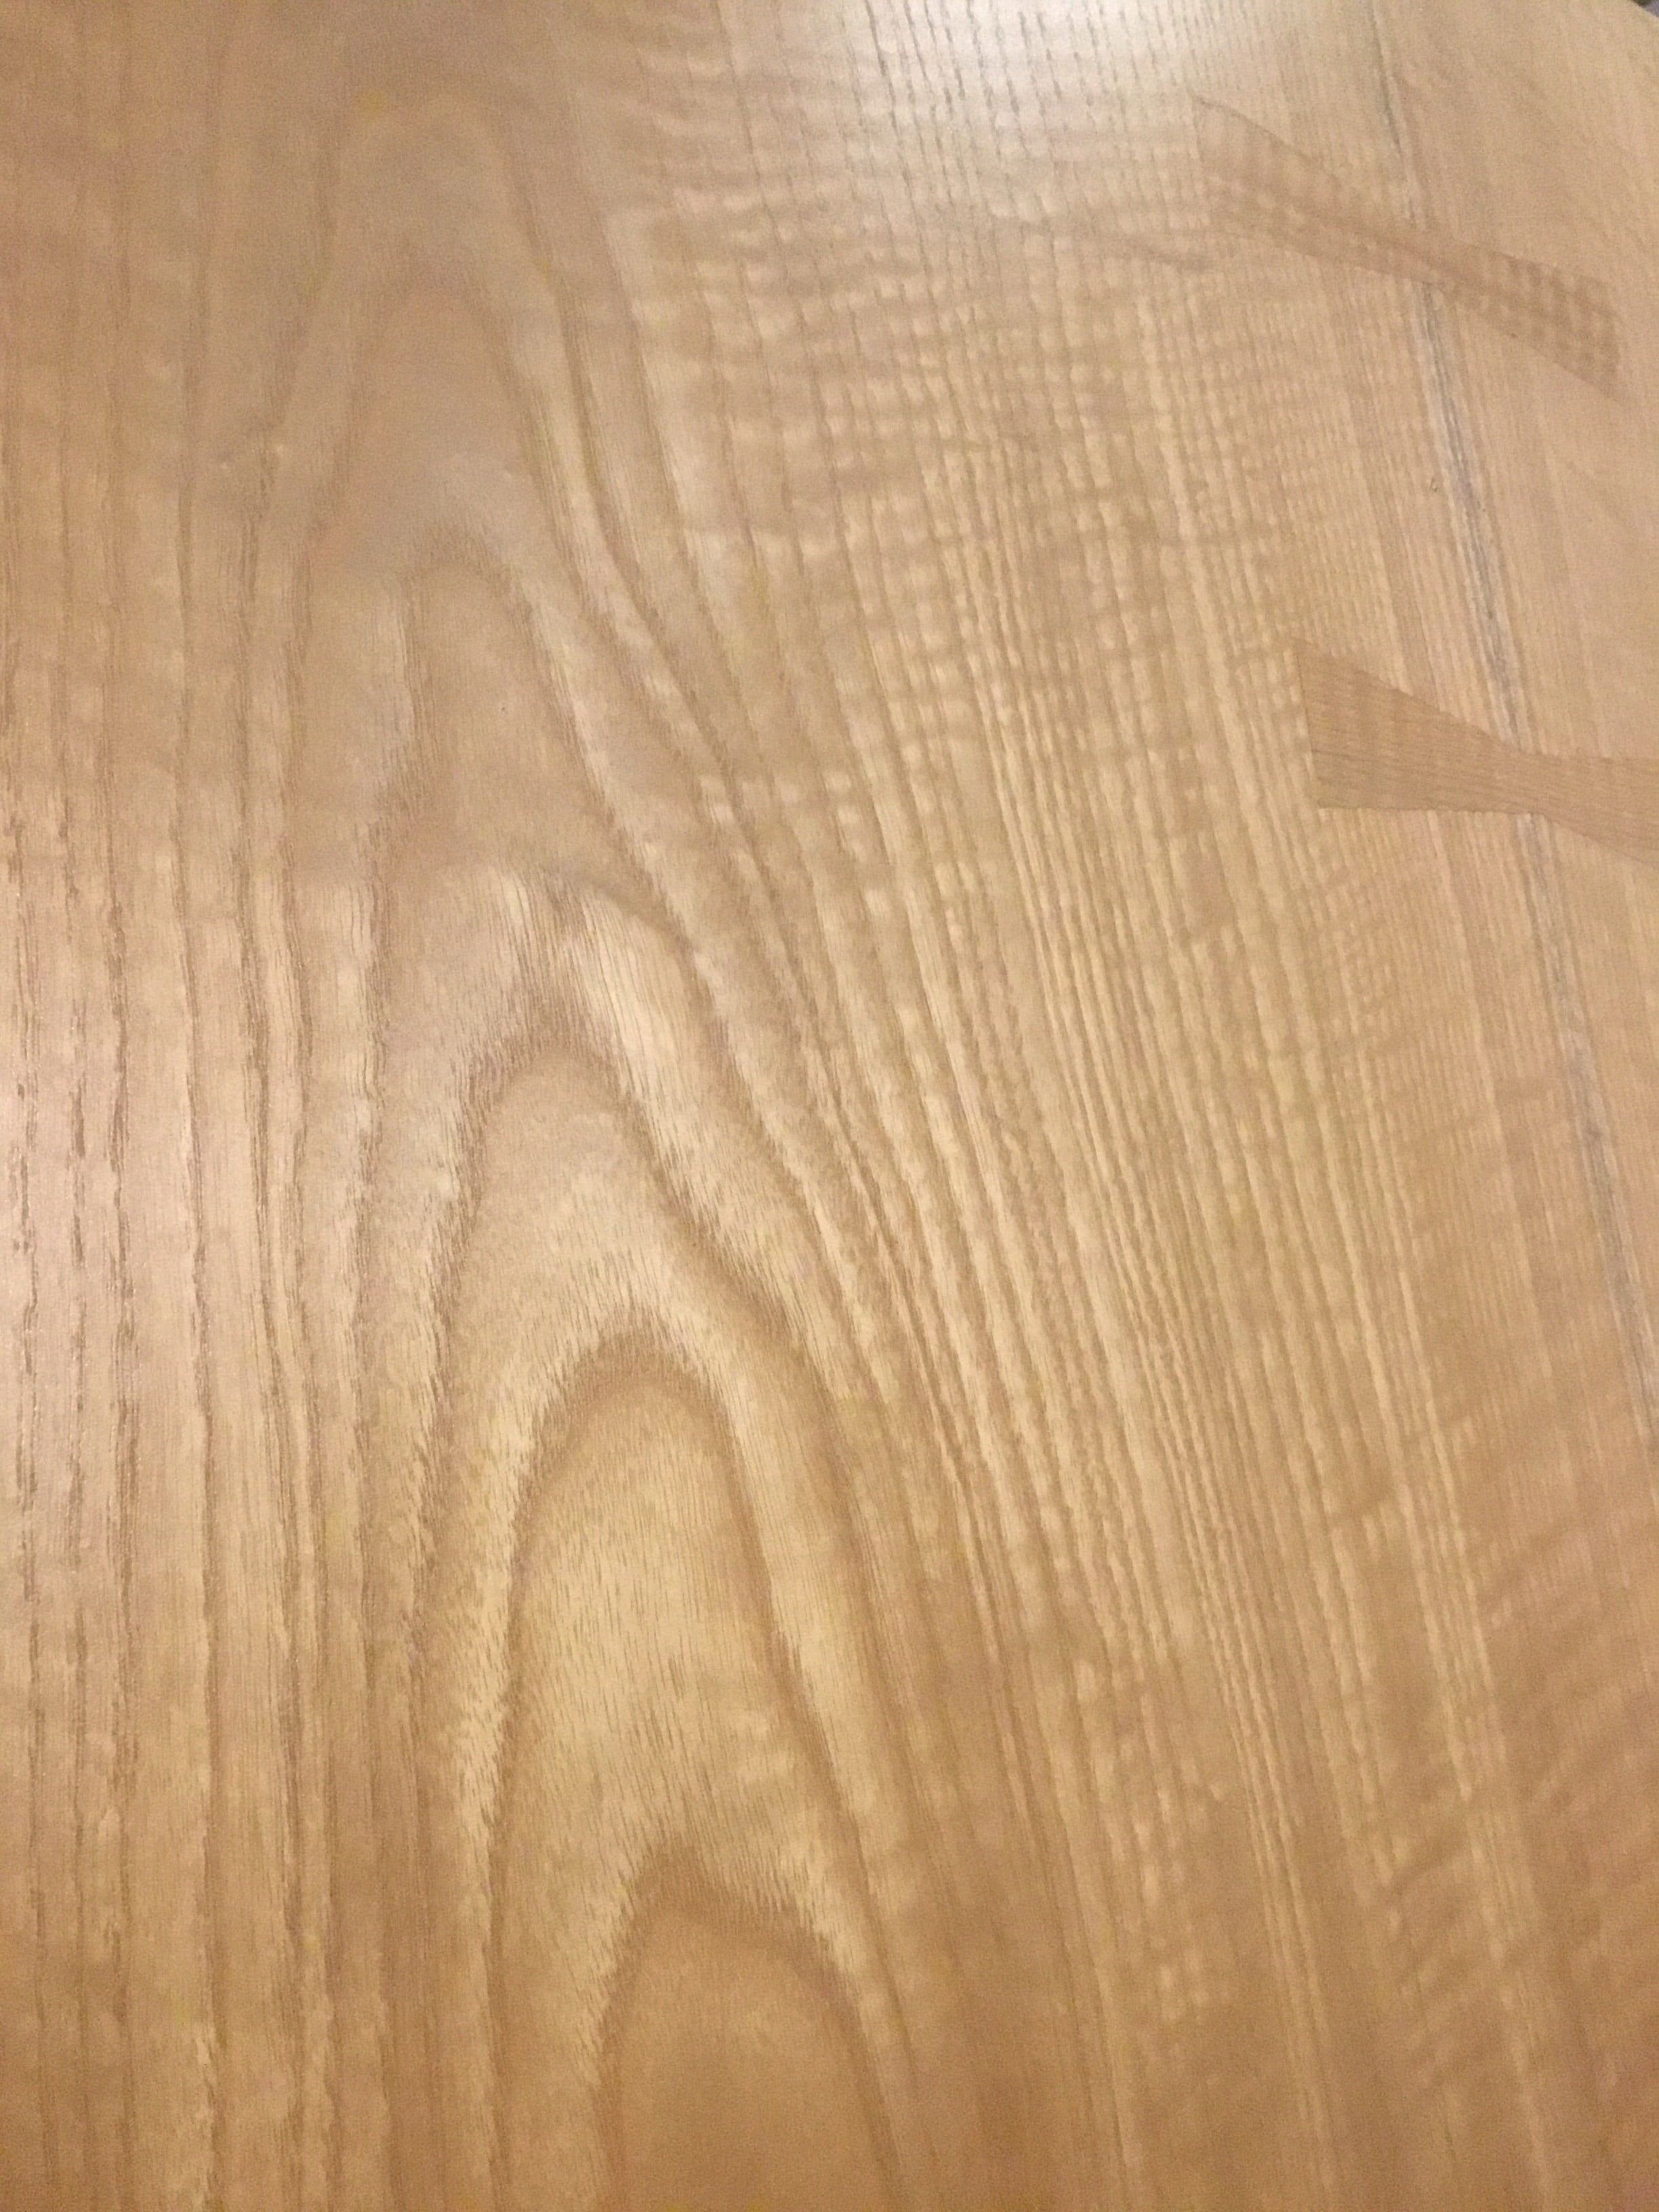 Live Edge Dining Table: Curly Sassafras with Curly Sassafras